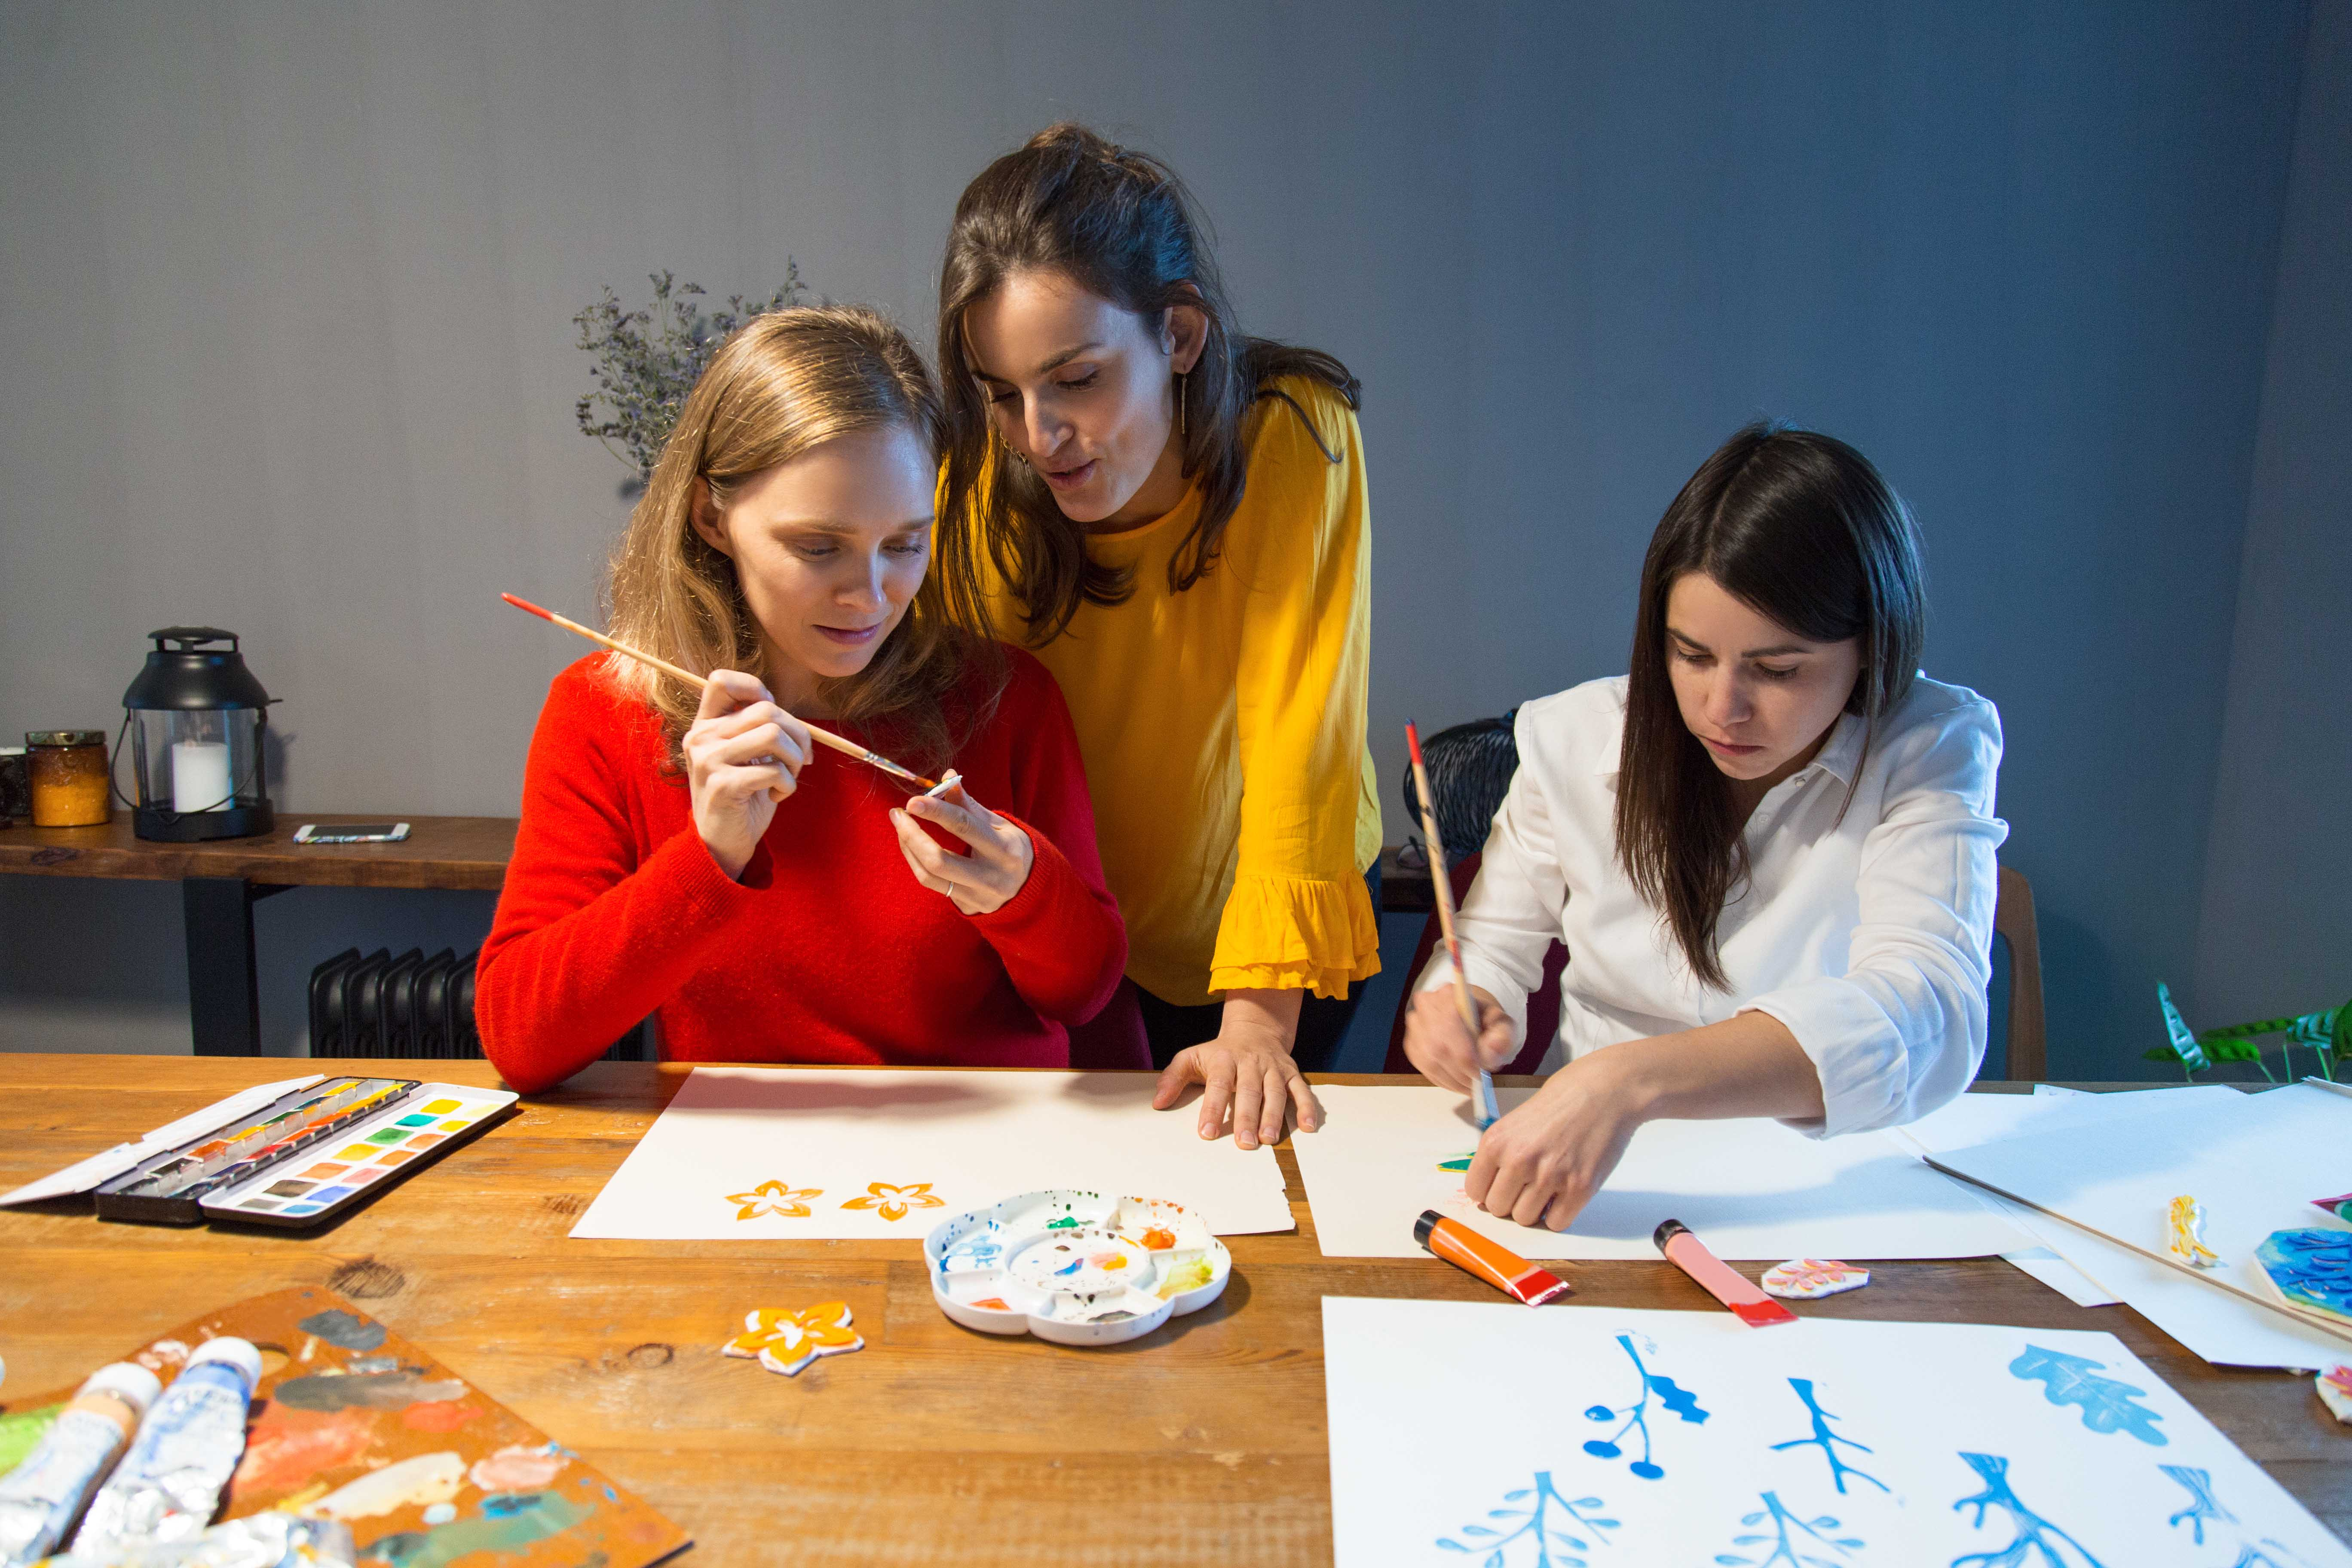 Drawing master supervising students work. Two girls painting with water colors, third one giving them advice. Panting class concept